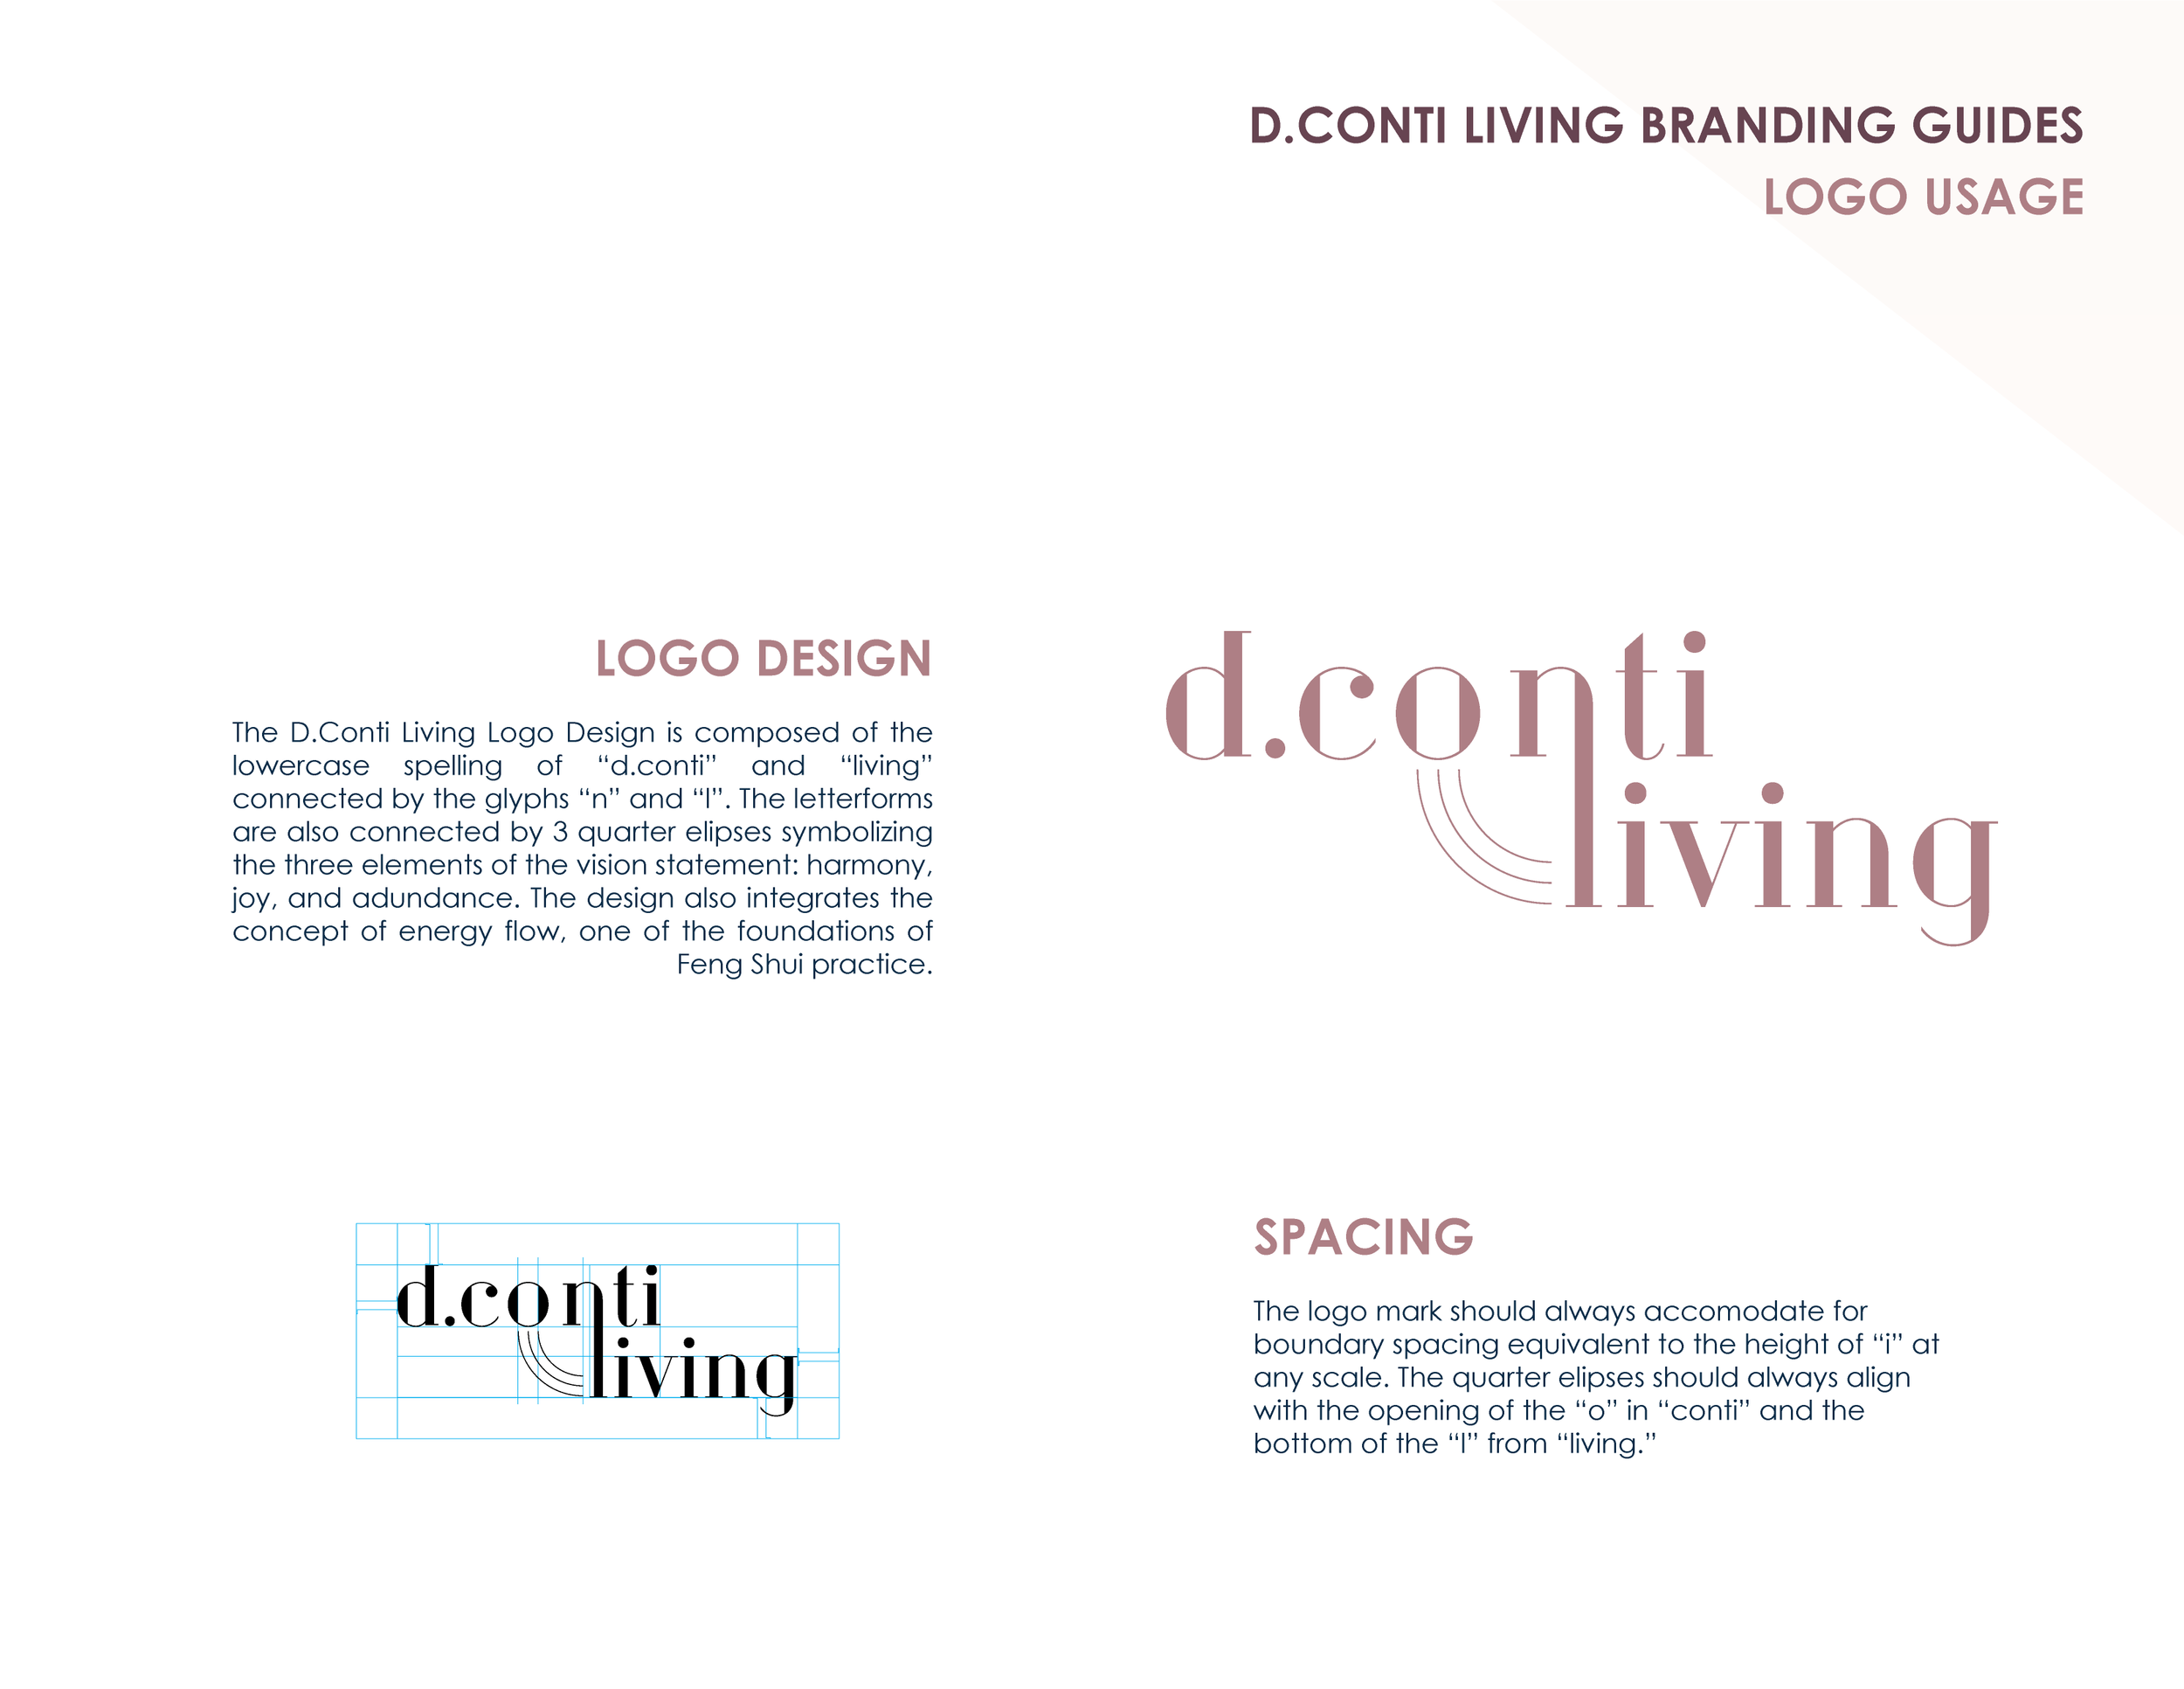 D Conti Living_Brand Guides-03.png